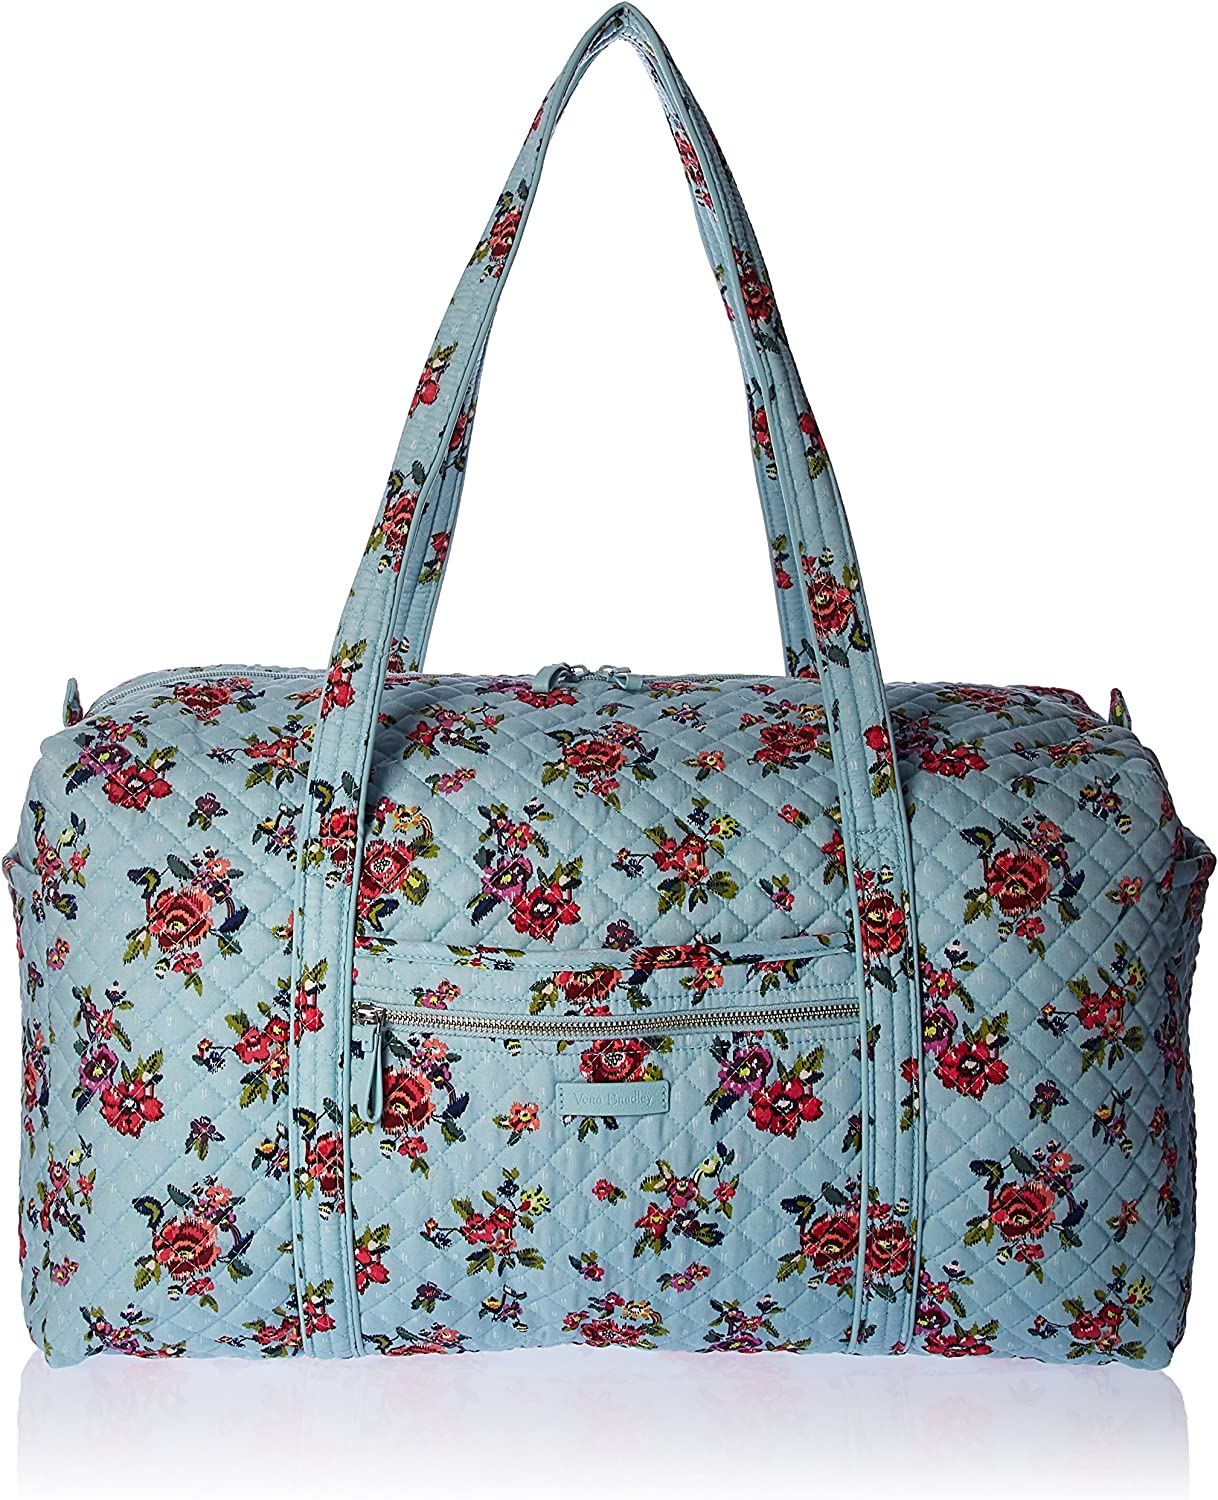 Vera Bradley Women s Signature Cotton Large Duffel Travel Bag